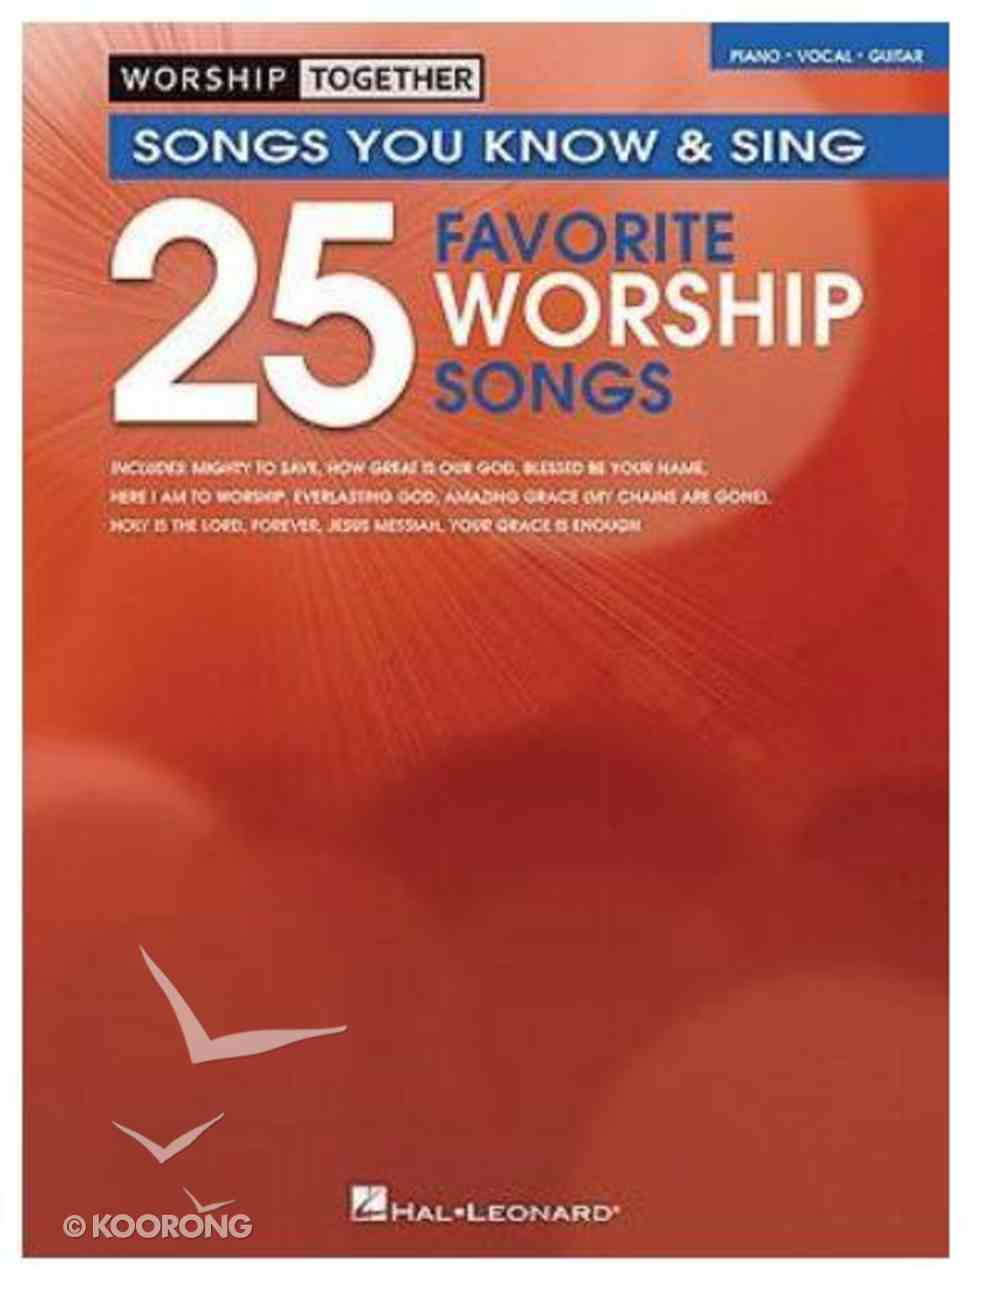 Worship Together: 25 Favorite Worship Songs Music Book (Piano/vocal/guitar) Paperback